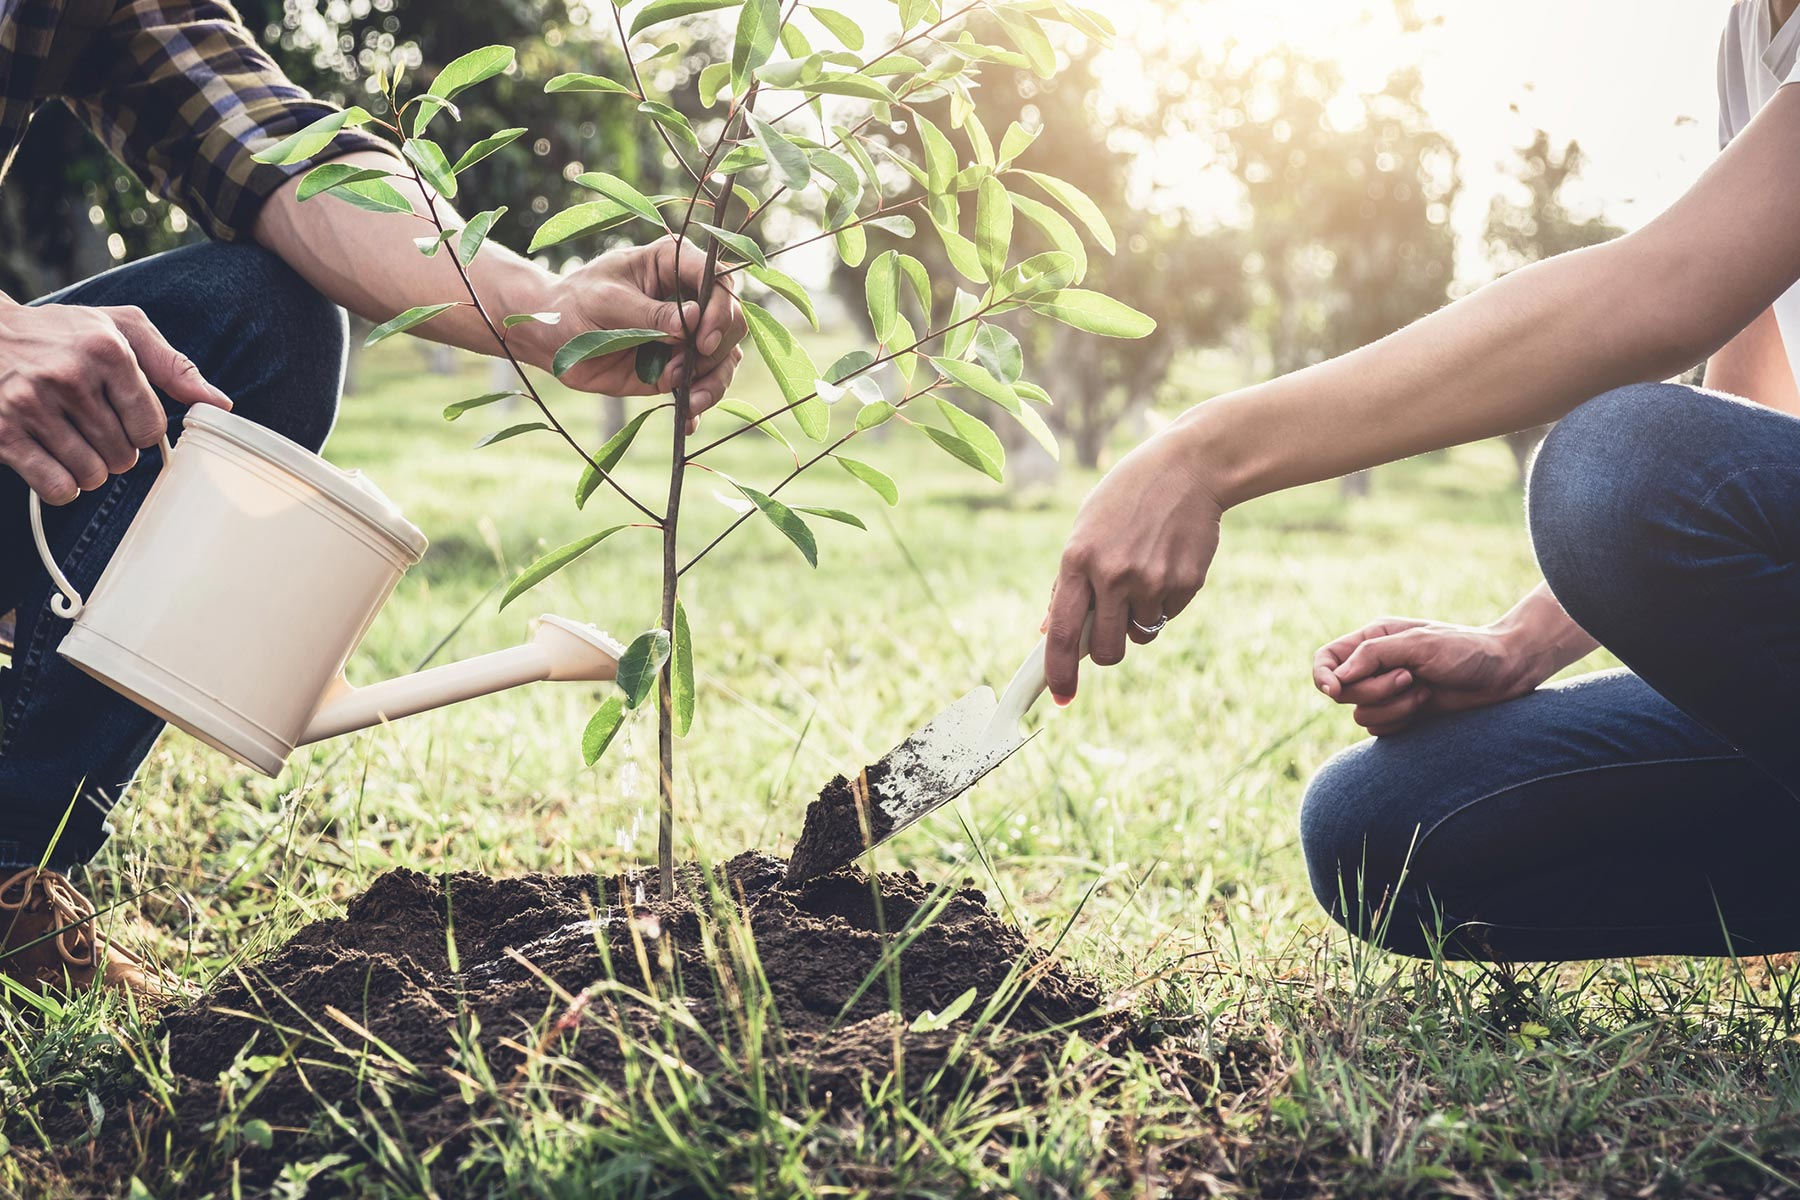 7 Steps to Properly Plant a Tree for Tree Day